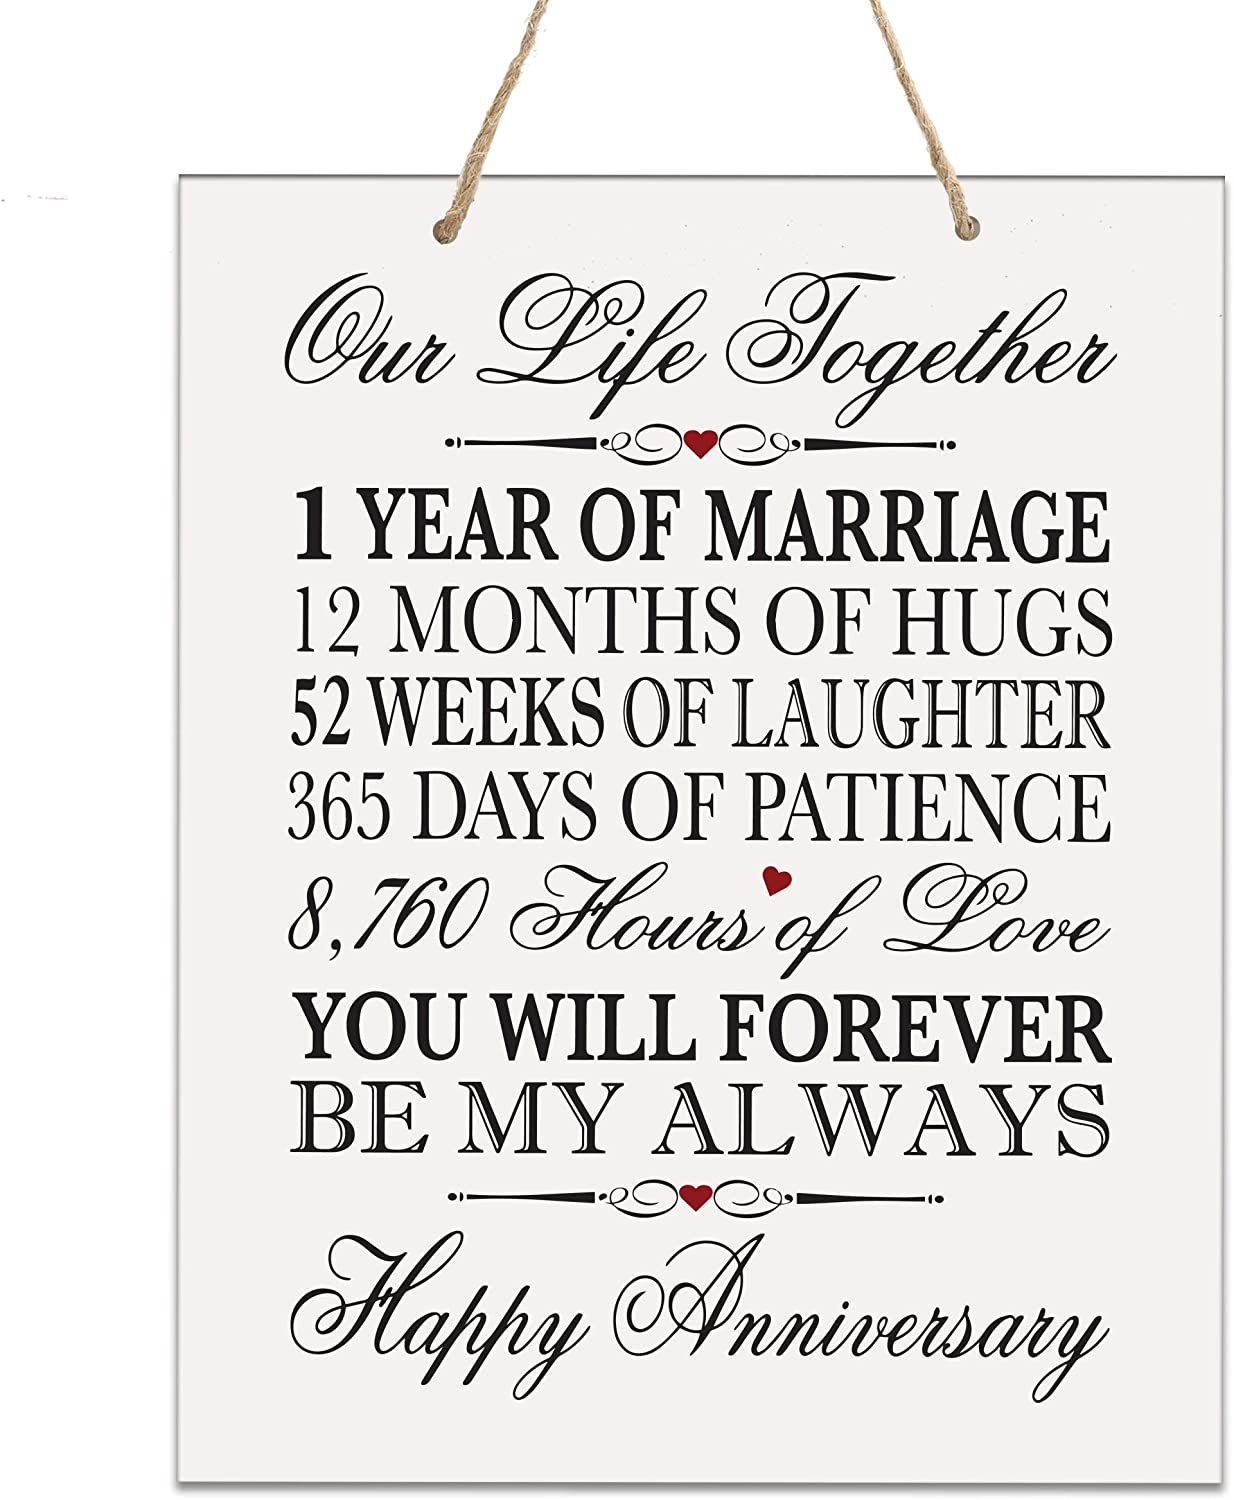 LifeSong Milestones 1st Anniversary Plaque 1 Year of Marriage - One Year Wedding Keepsake Gift for Parents Husband Wife him her - Our Life Together (12x15 Rope Sign)